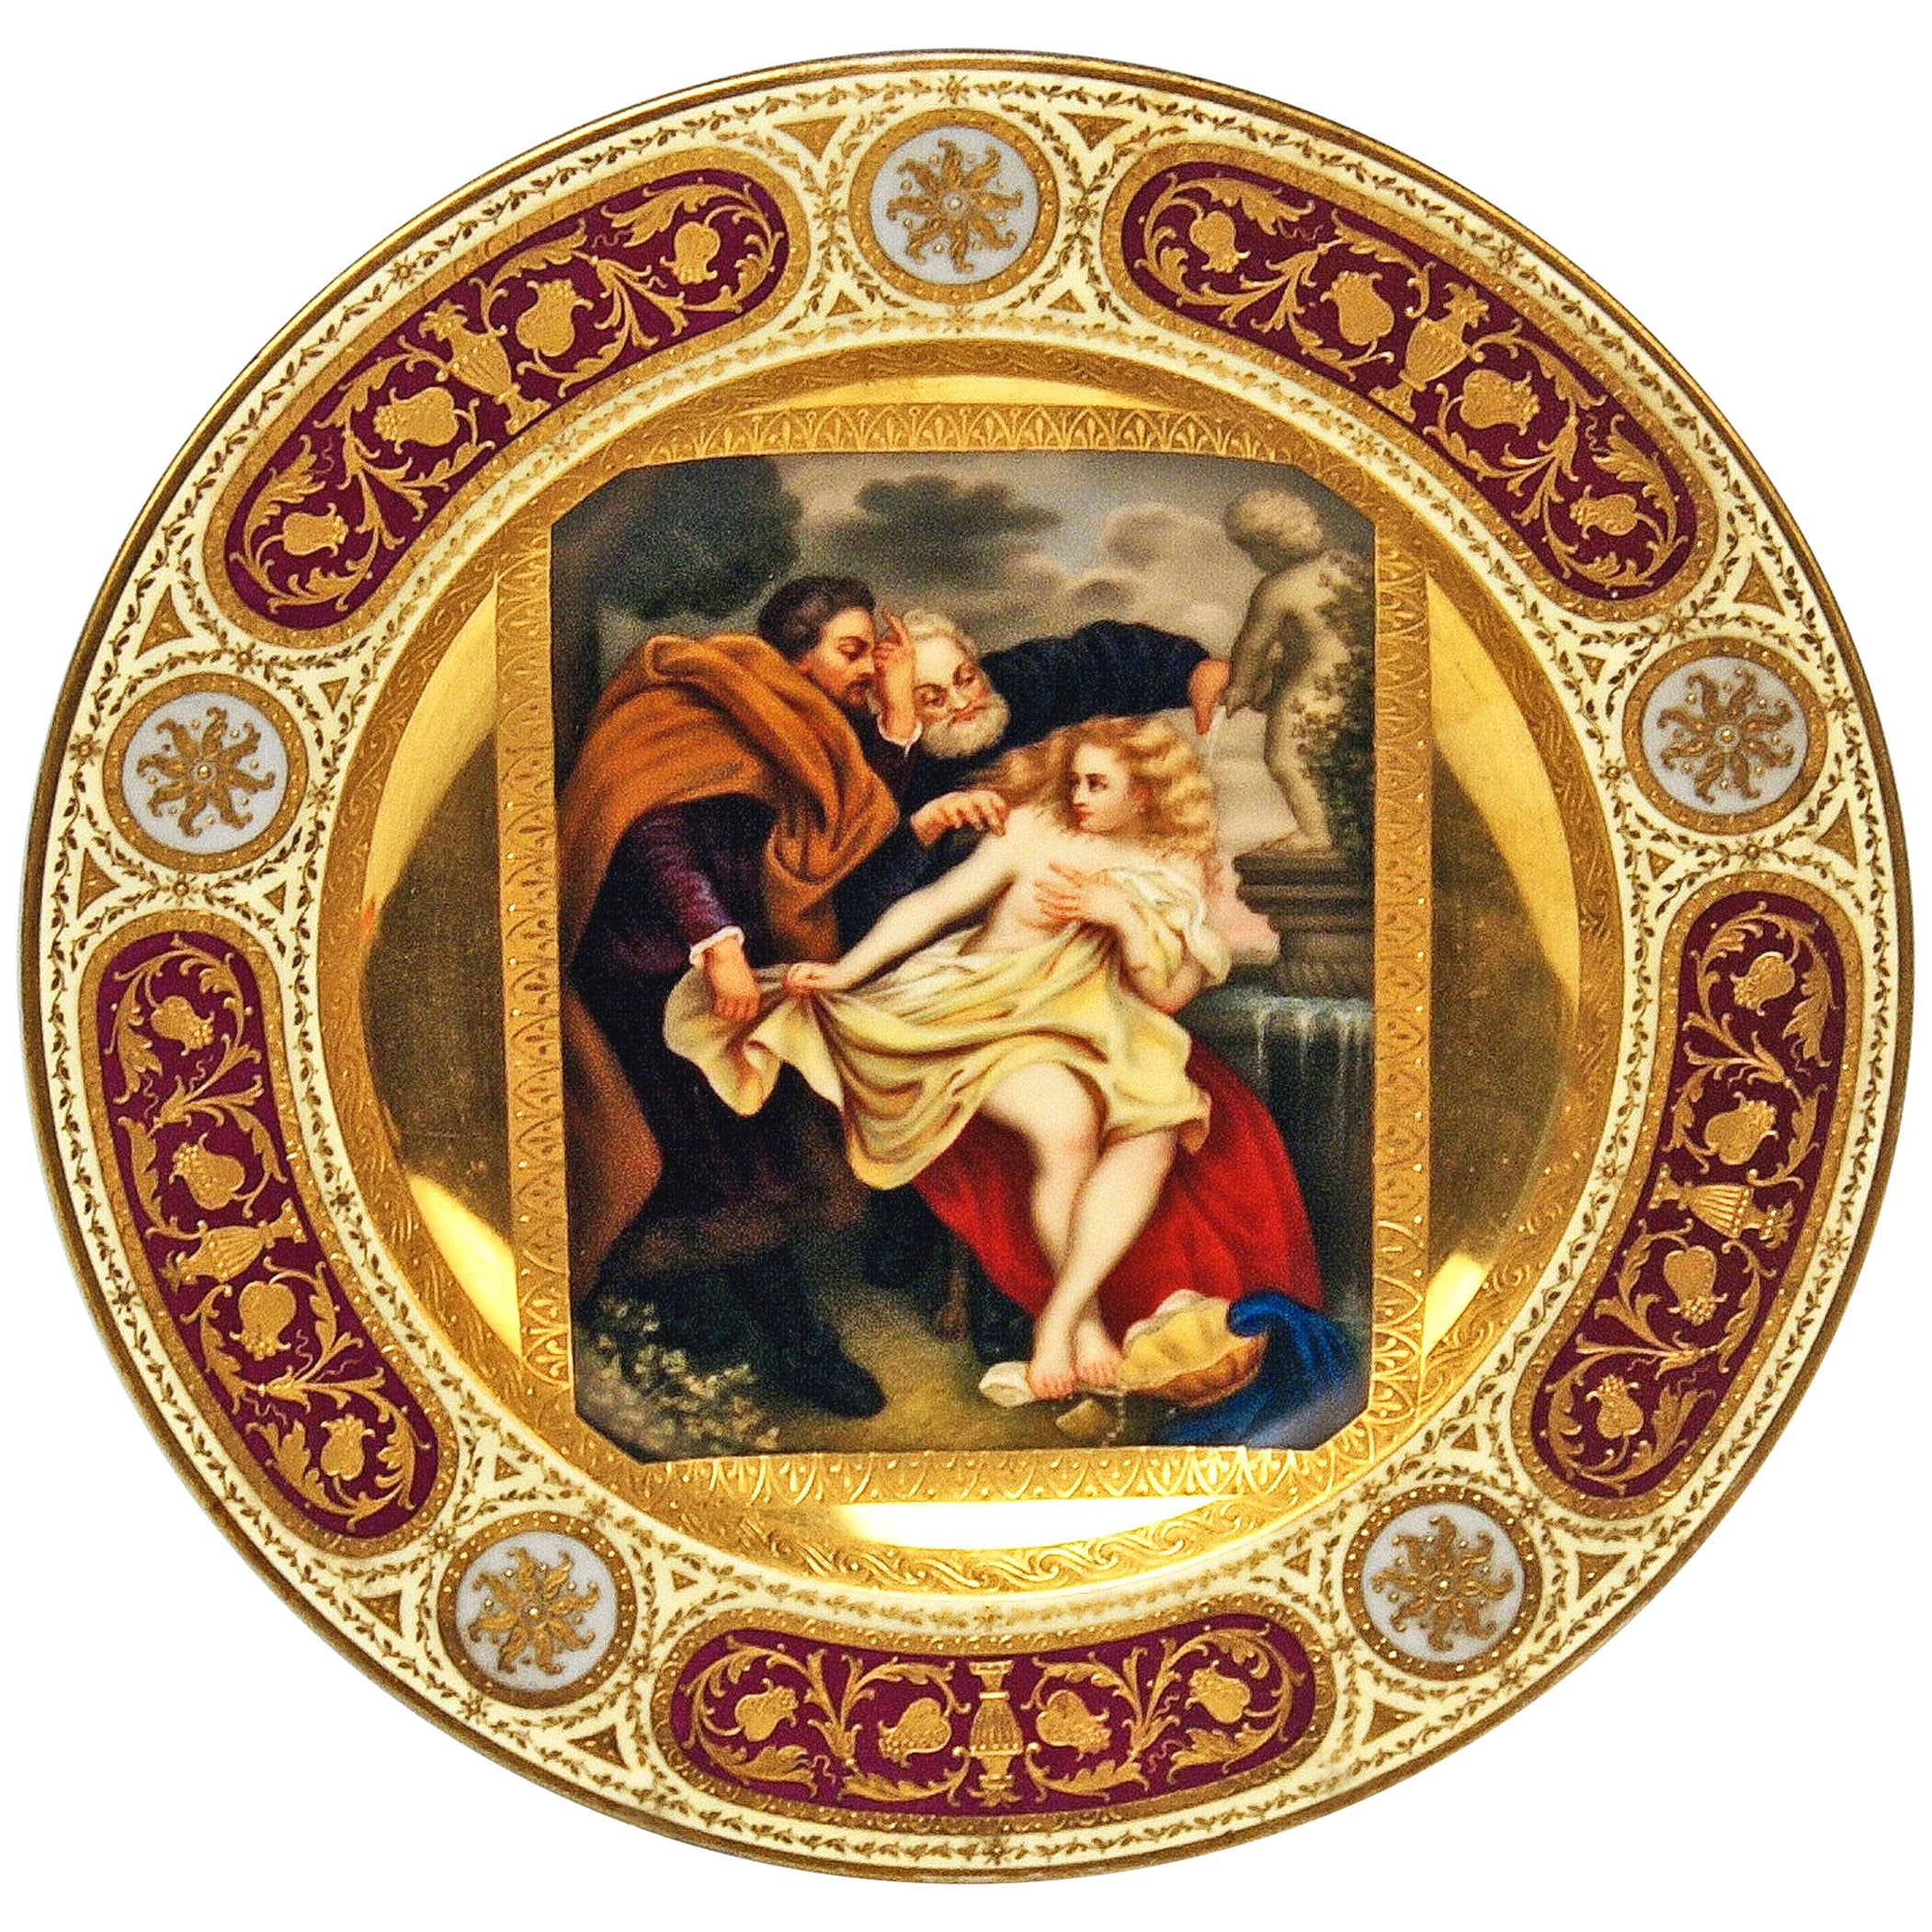 Plate Imperial Viennese Porcelain Painting Susanna and the Elders, 1813